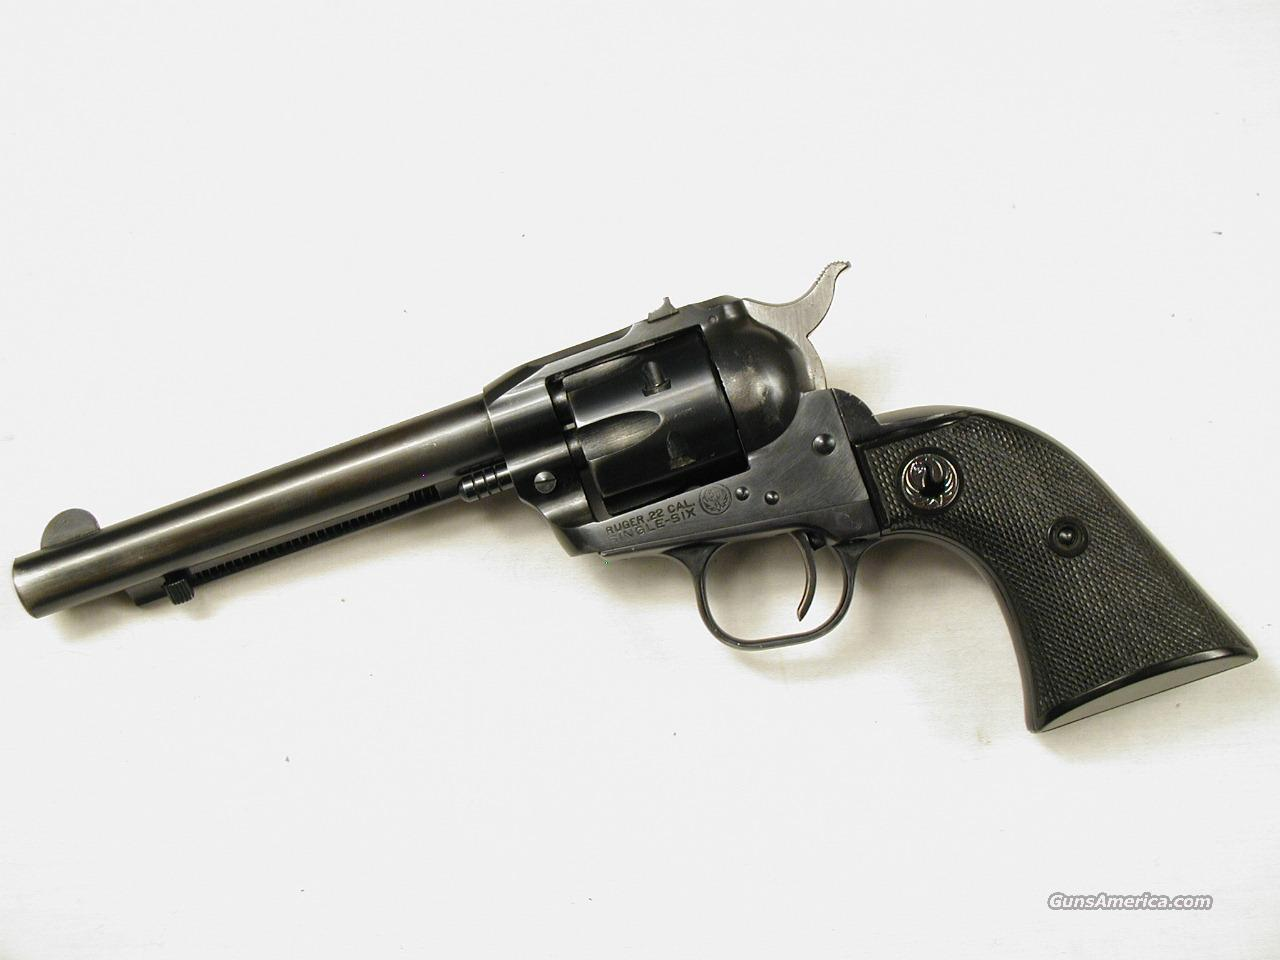 RUGER SINGLE SIX FLAT GATE  Guns > Pistols > Ruger Single Action Revolvers > Single Six Type